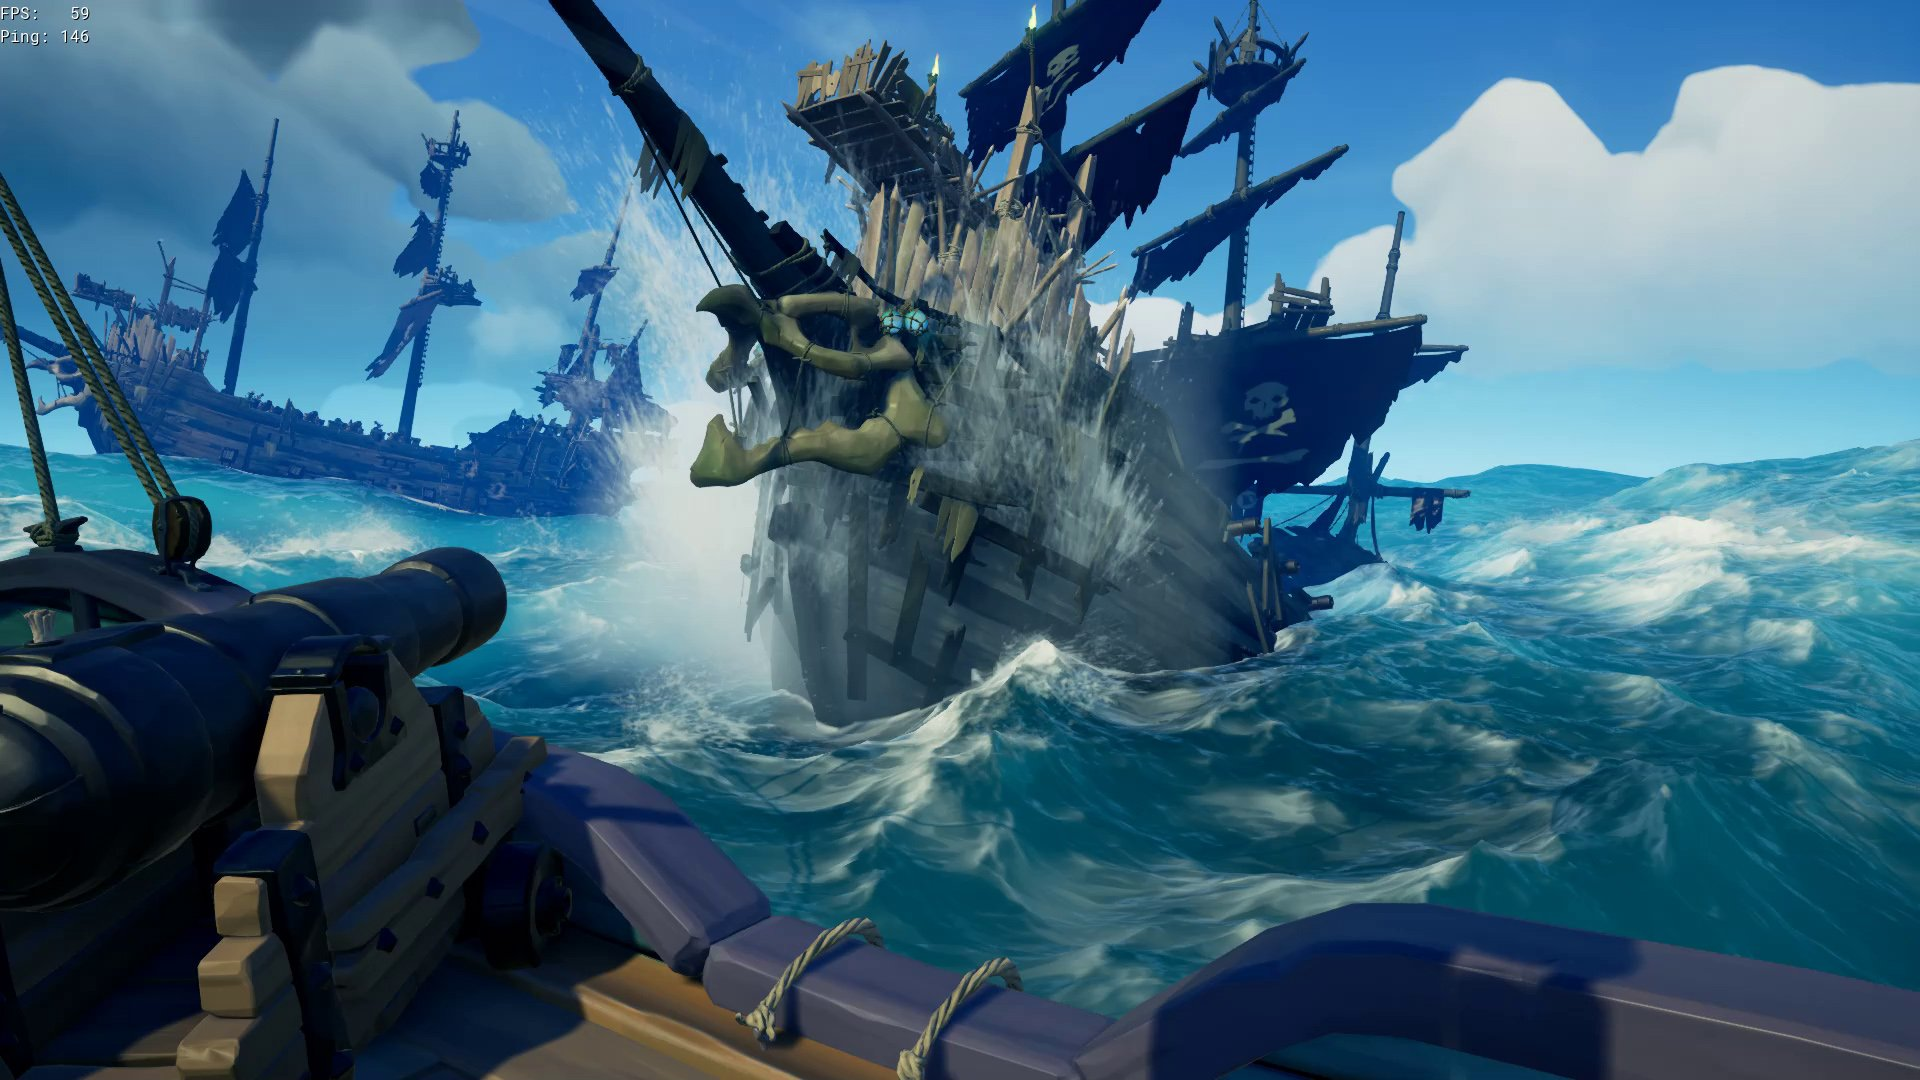 https://d1lss44hh2trtw.cloudfront.net/assets/editorial/2018/08/skeleton-ships-sea-of-thieves.jpg